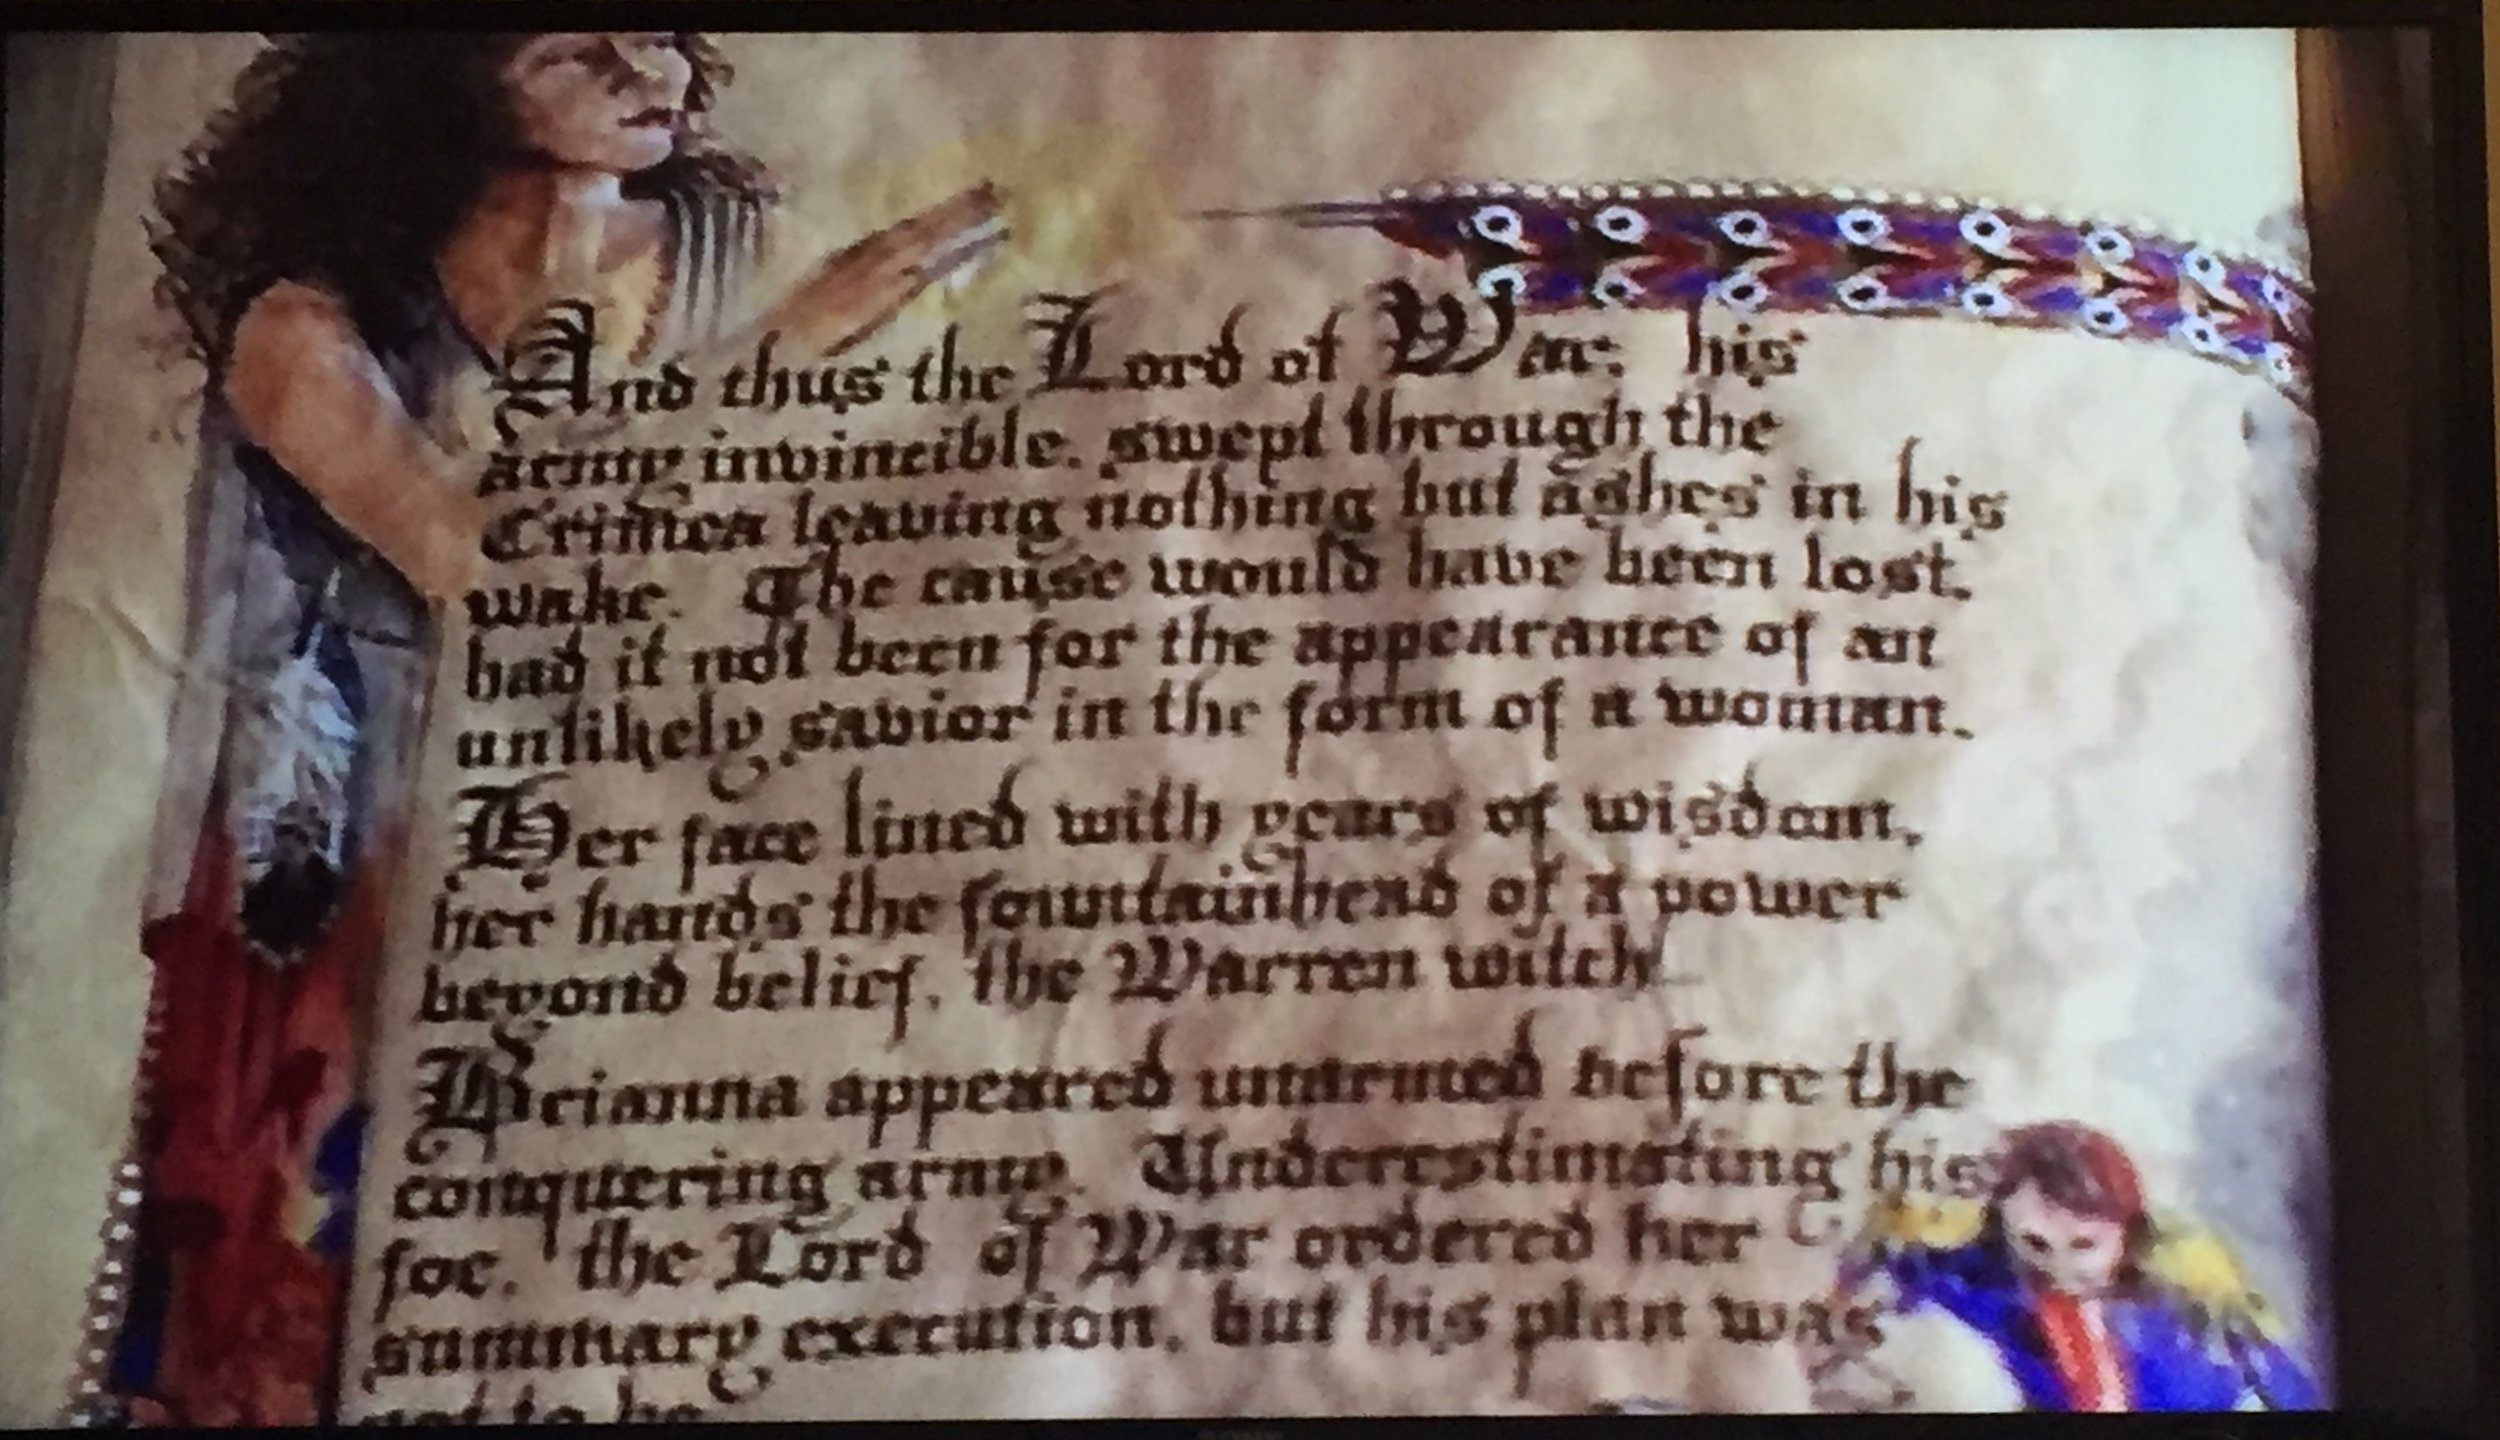 Book of Shadows entry for the Lord of War.